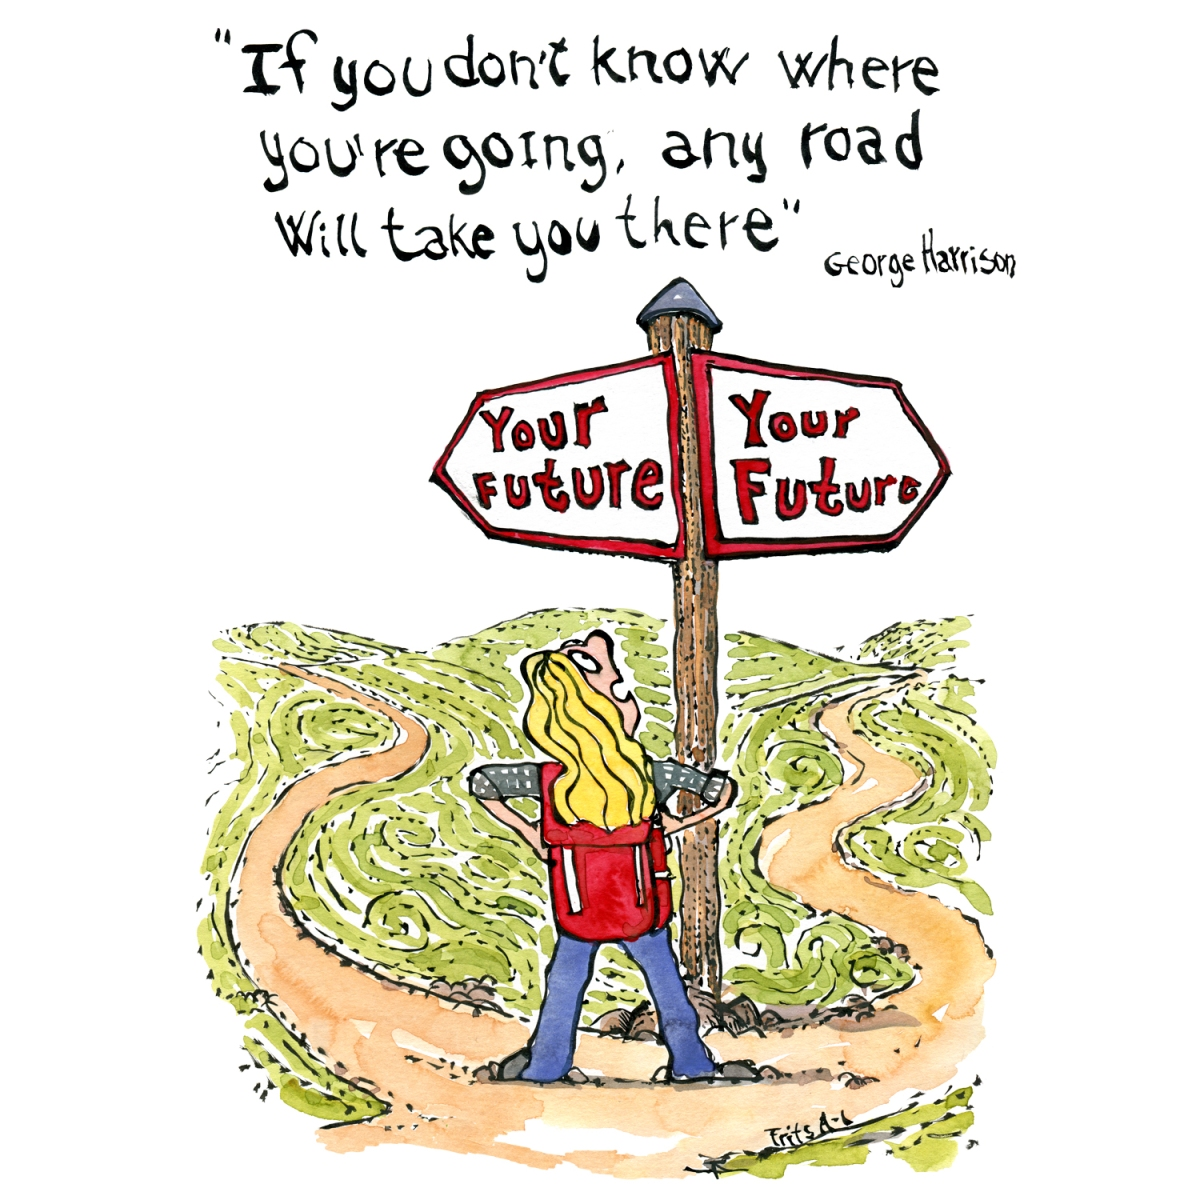 """Drawing with a woman looking at a signpost with """"your future on both ways. with Quote by George Harrison - if you don't know where you are going any road will take you there..."""